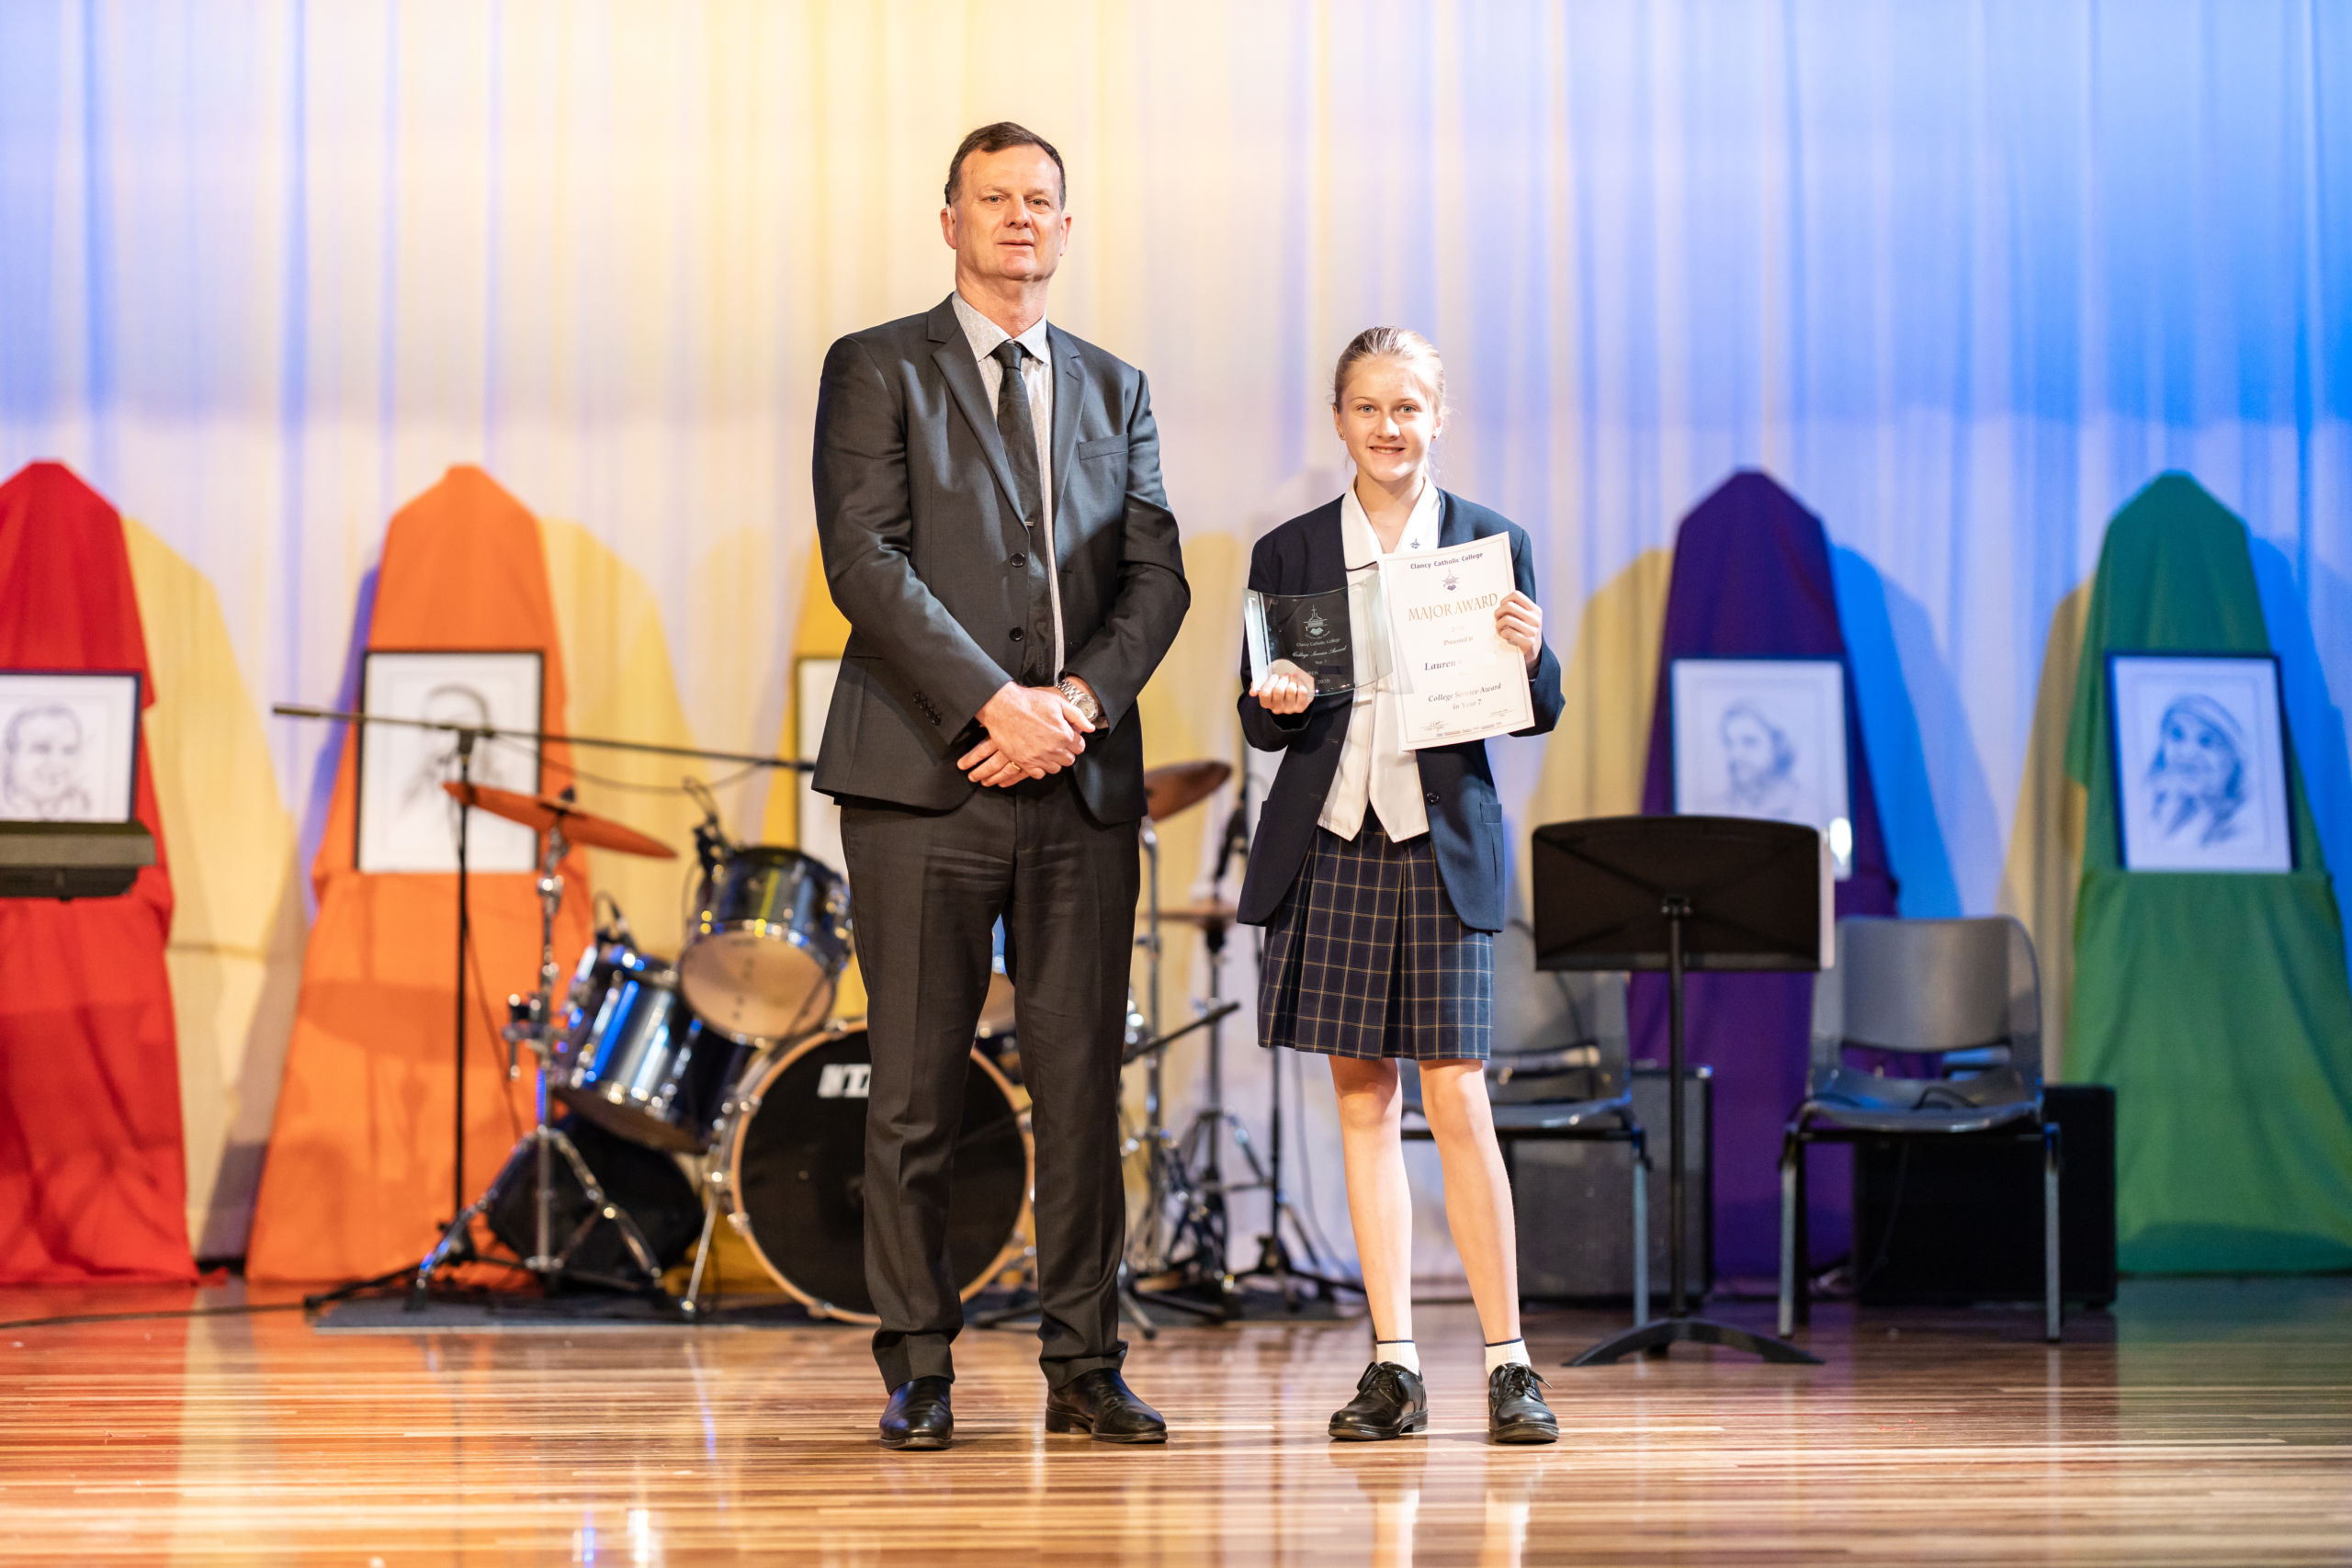 principal with student on stage